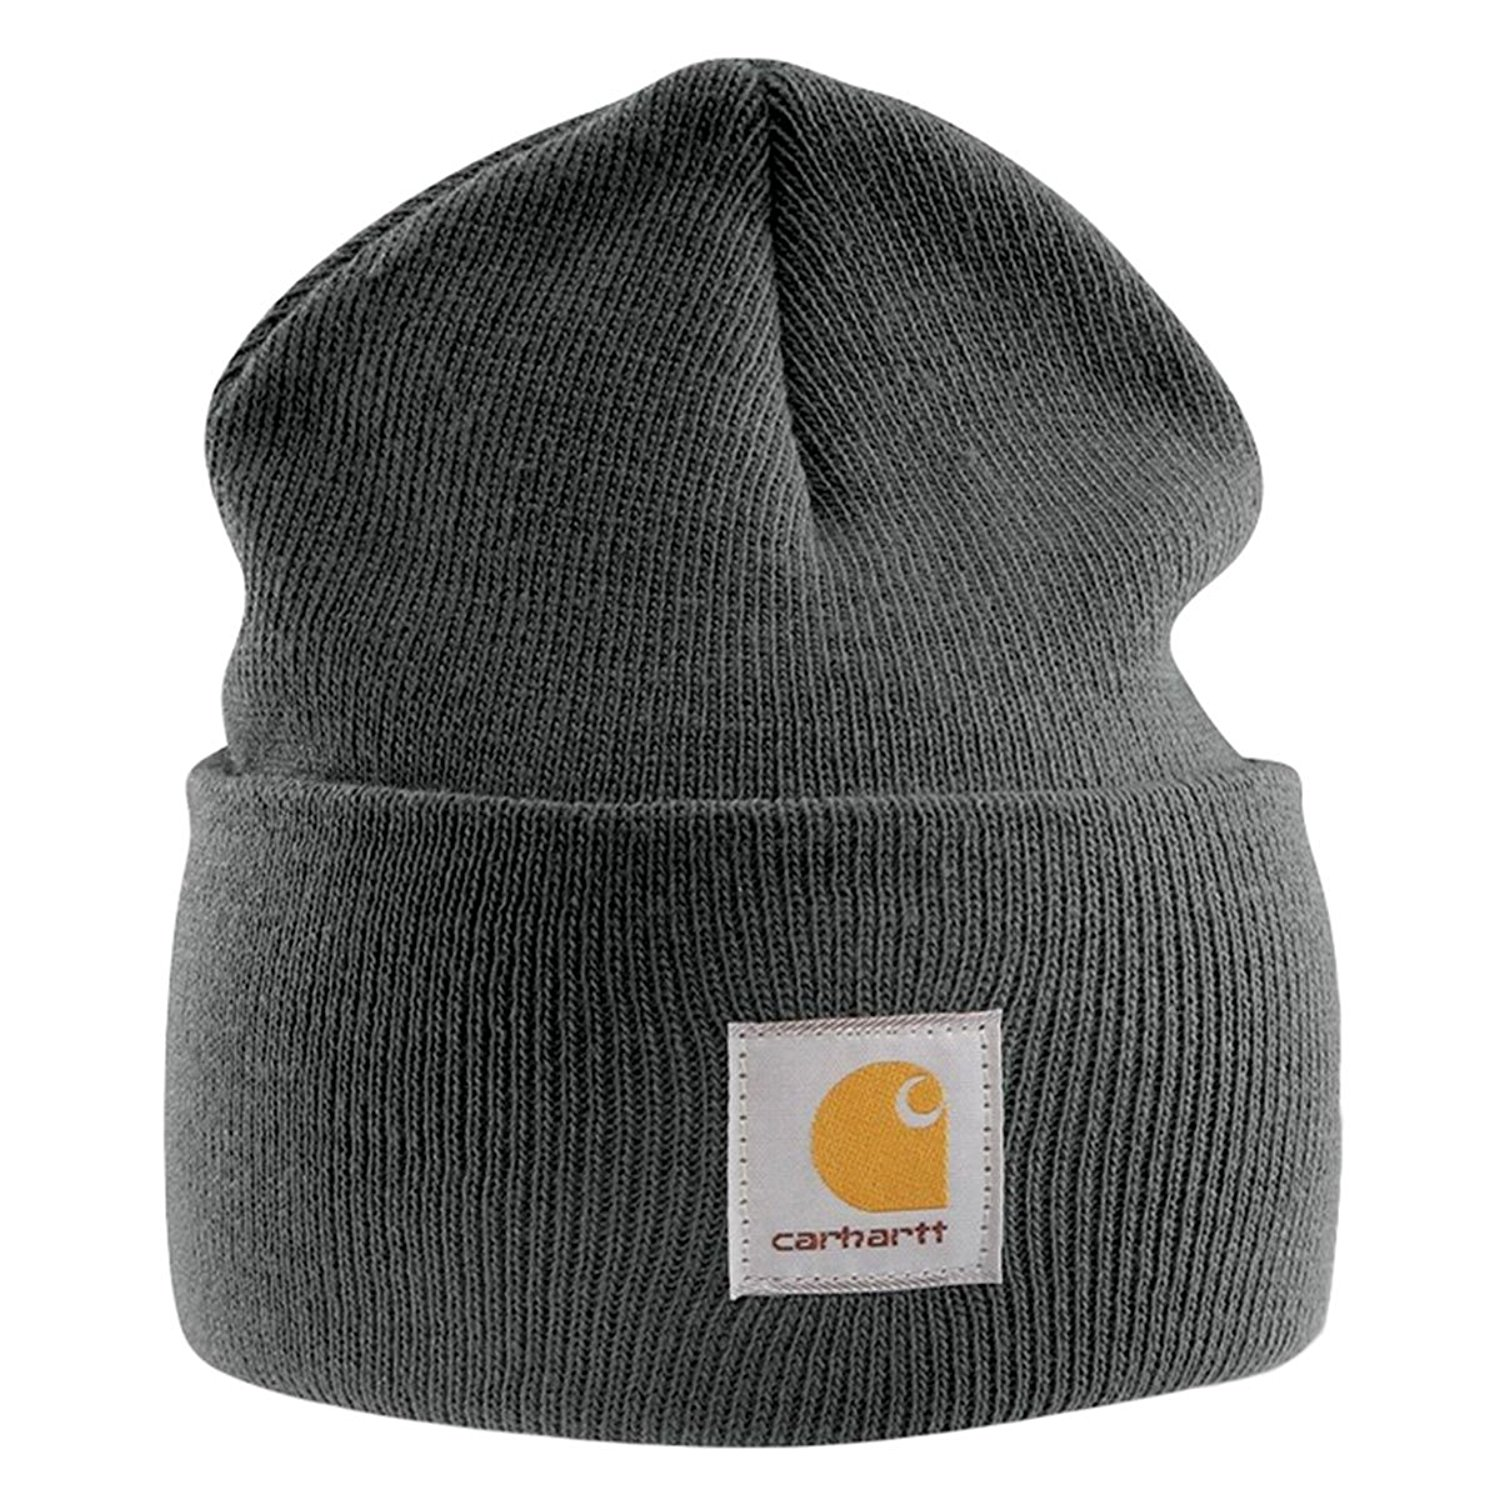 50909f4a330 Get Quotations · Carhartt Acrylic Watch Cap - Charcoal CHA18CLH Mens Winter  Beanie Ski Hat